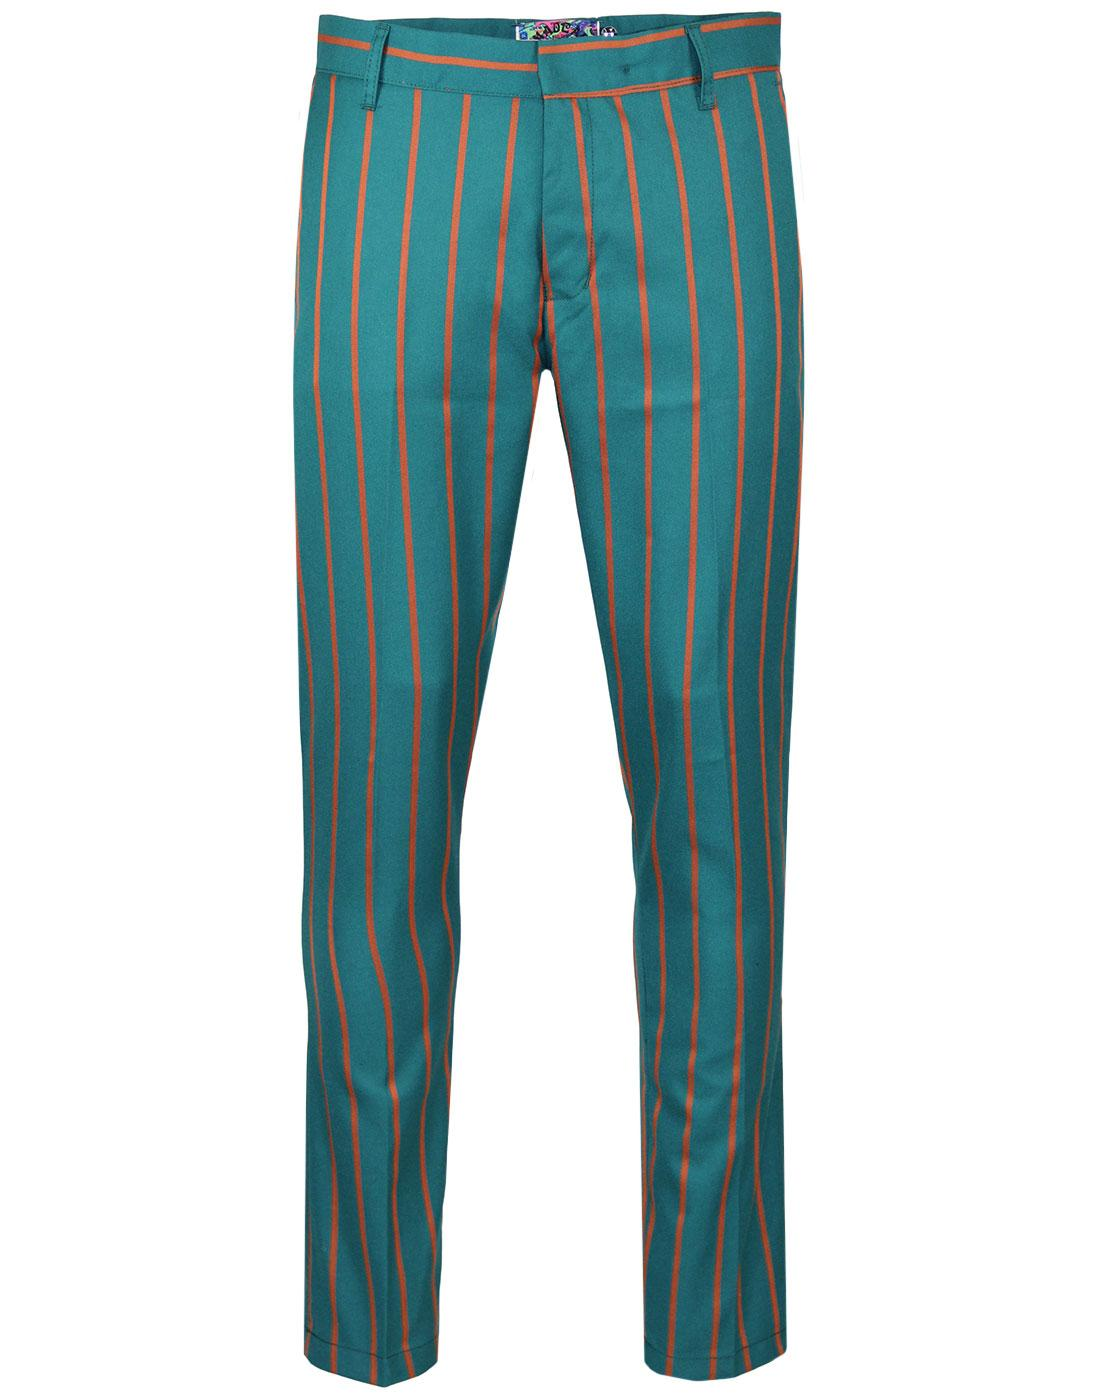 Offbeat MADCAP ENGLAND 60s Mod Stripe Trousers T/J